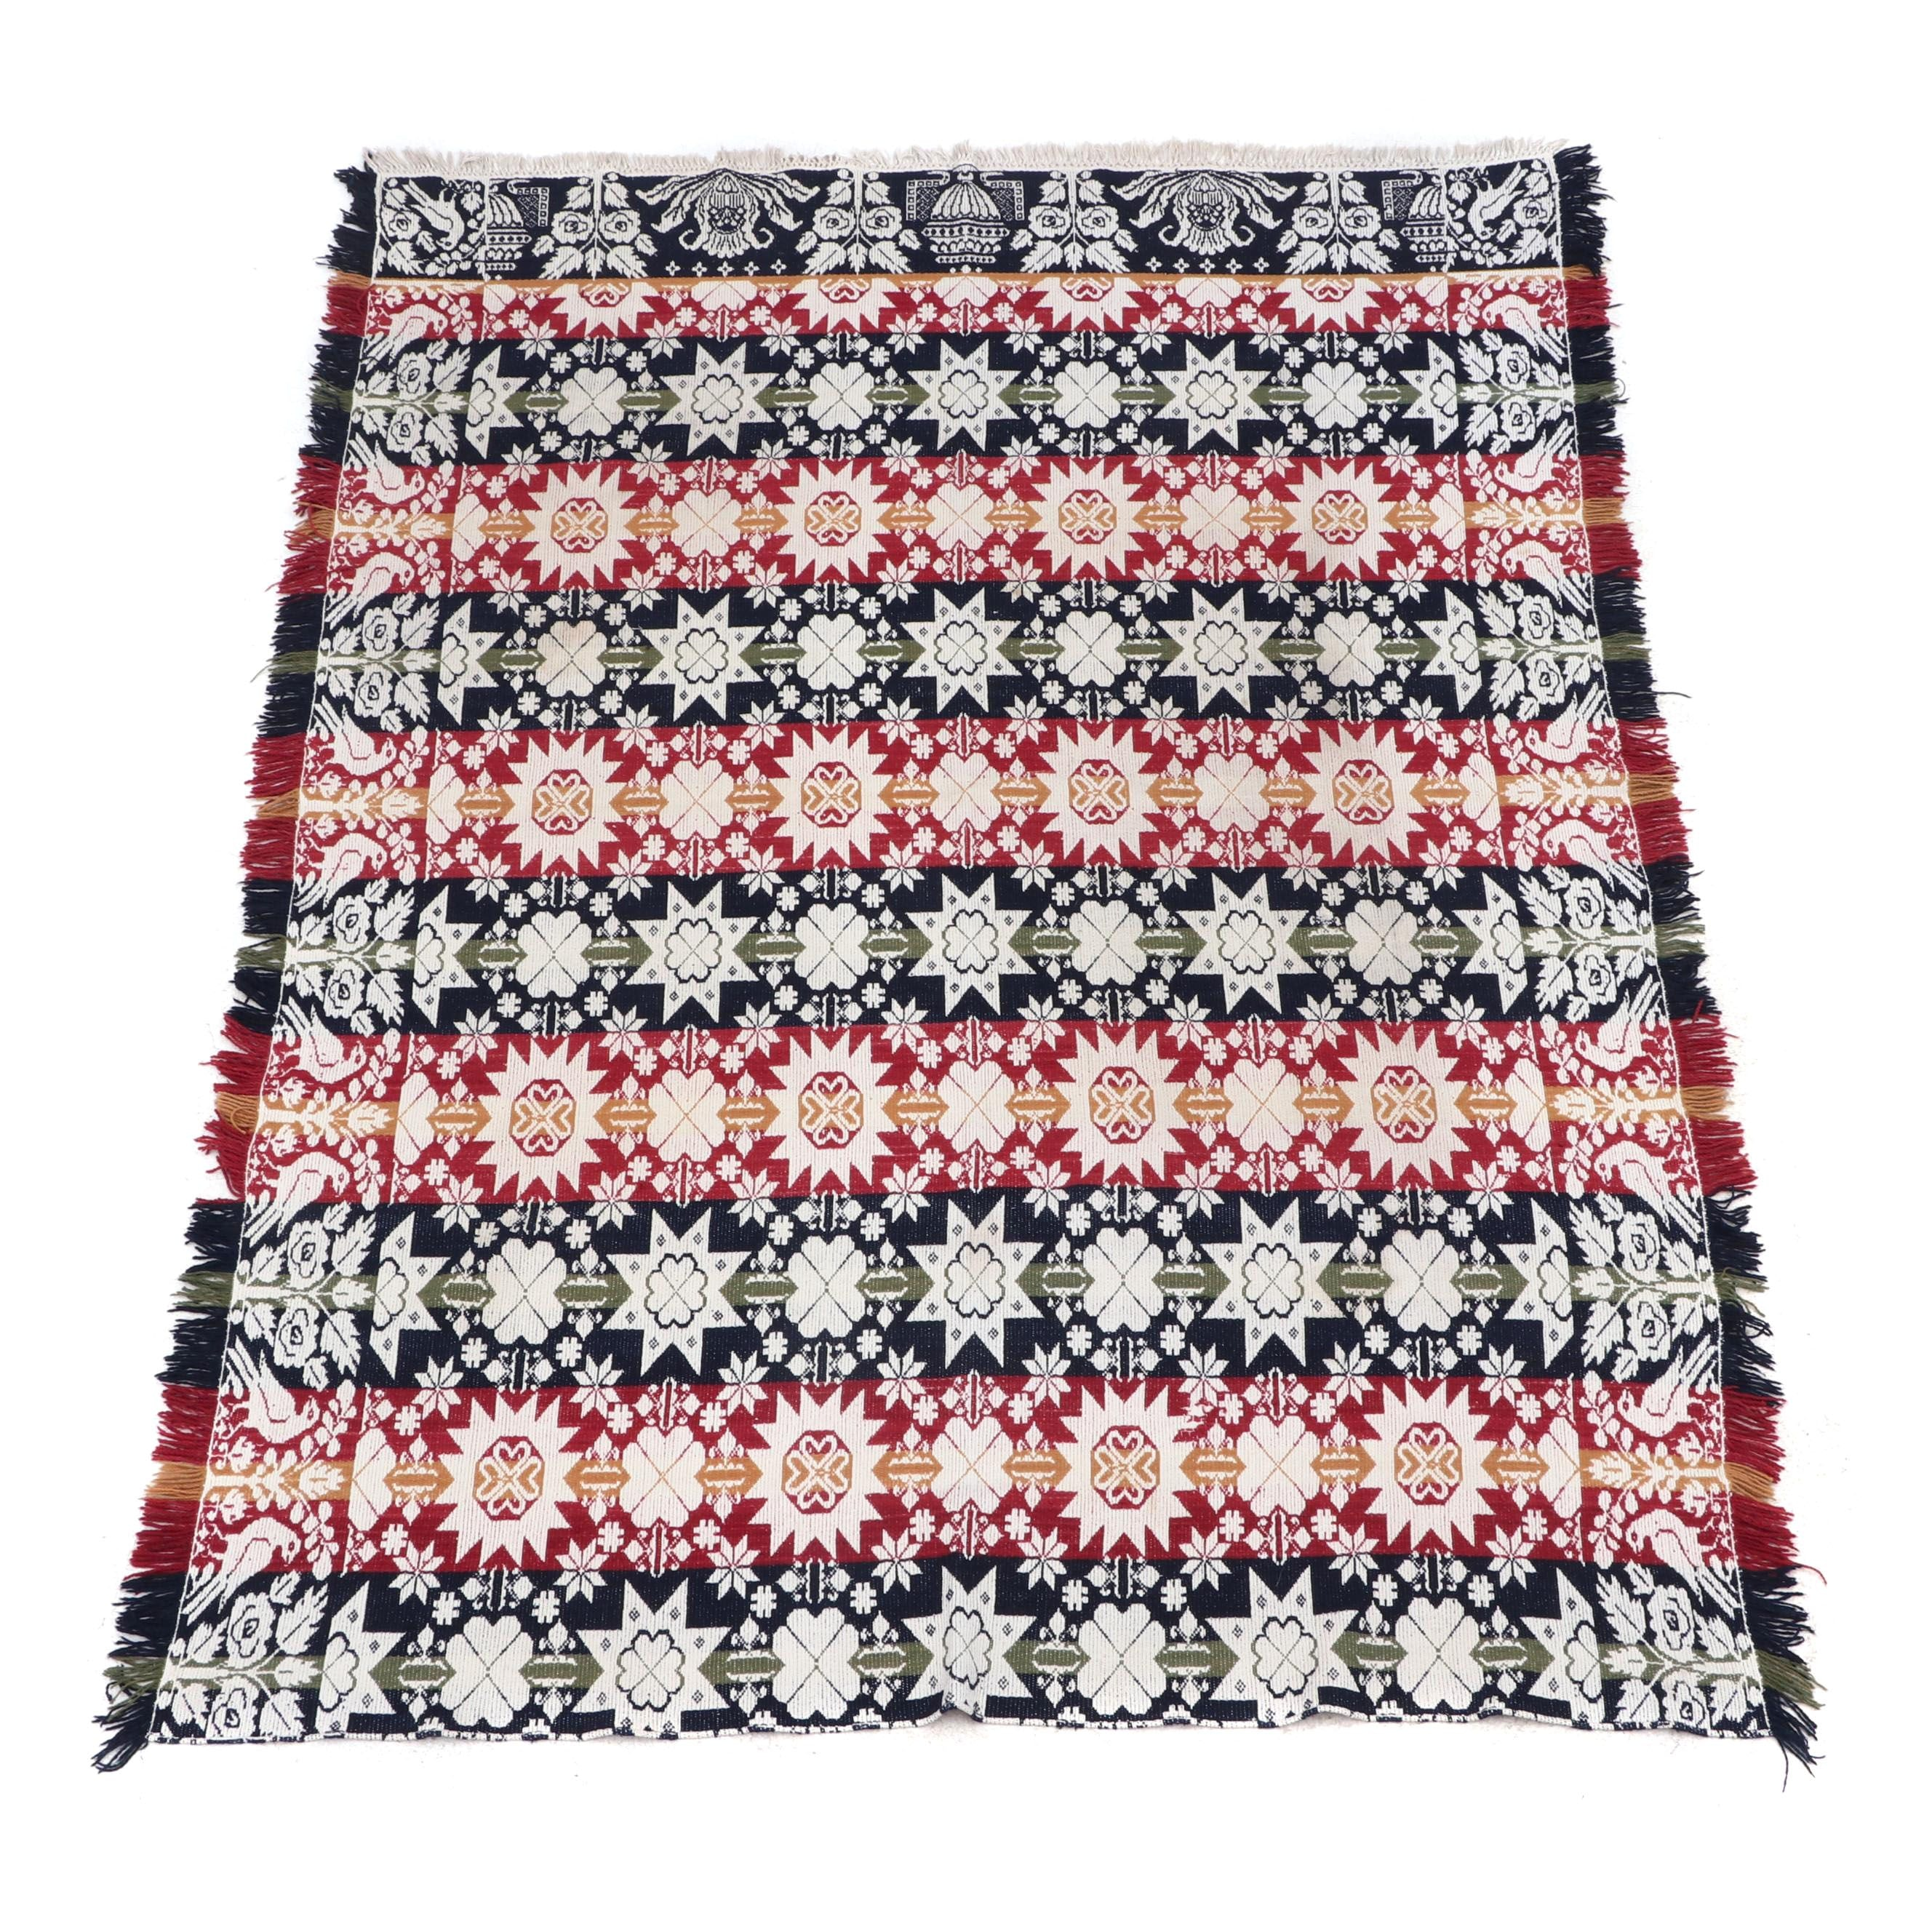 Multicolored Wool Blend Throw with Floral and Bird Motif